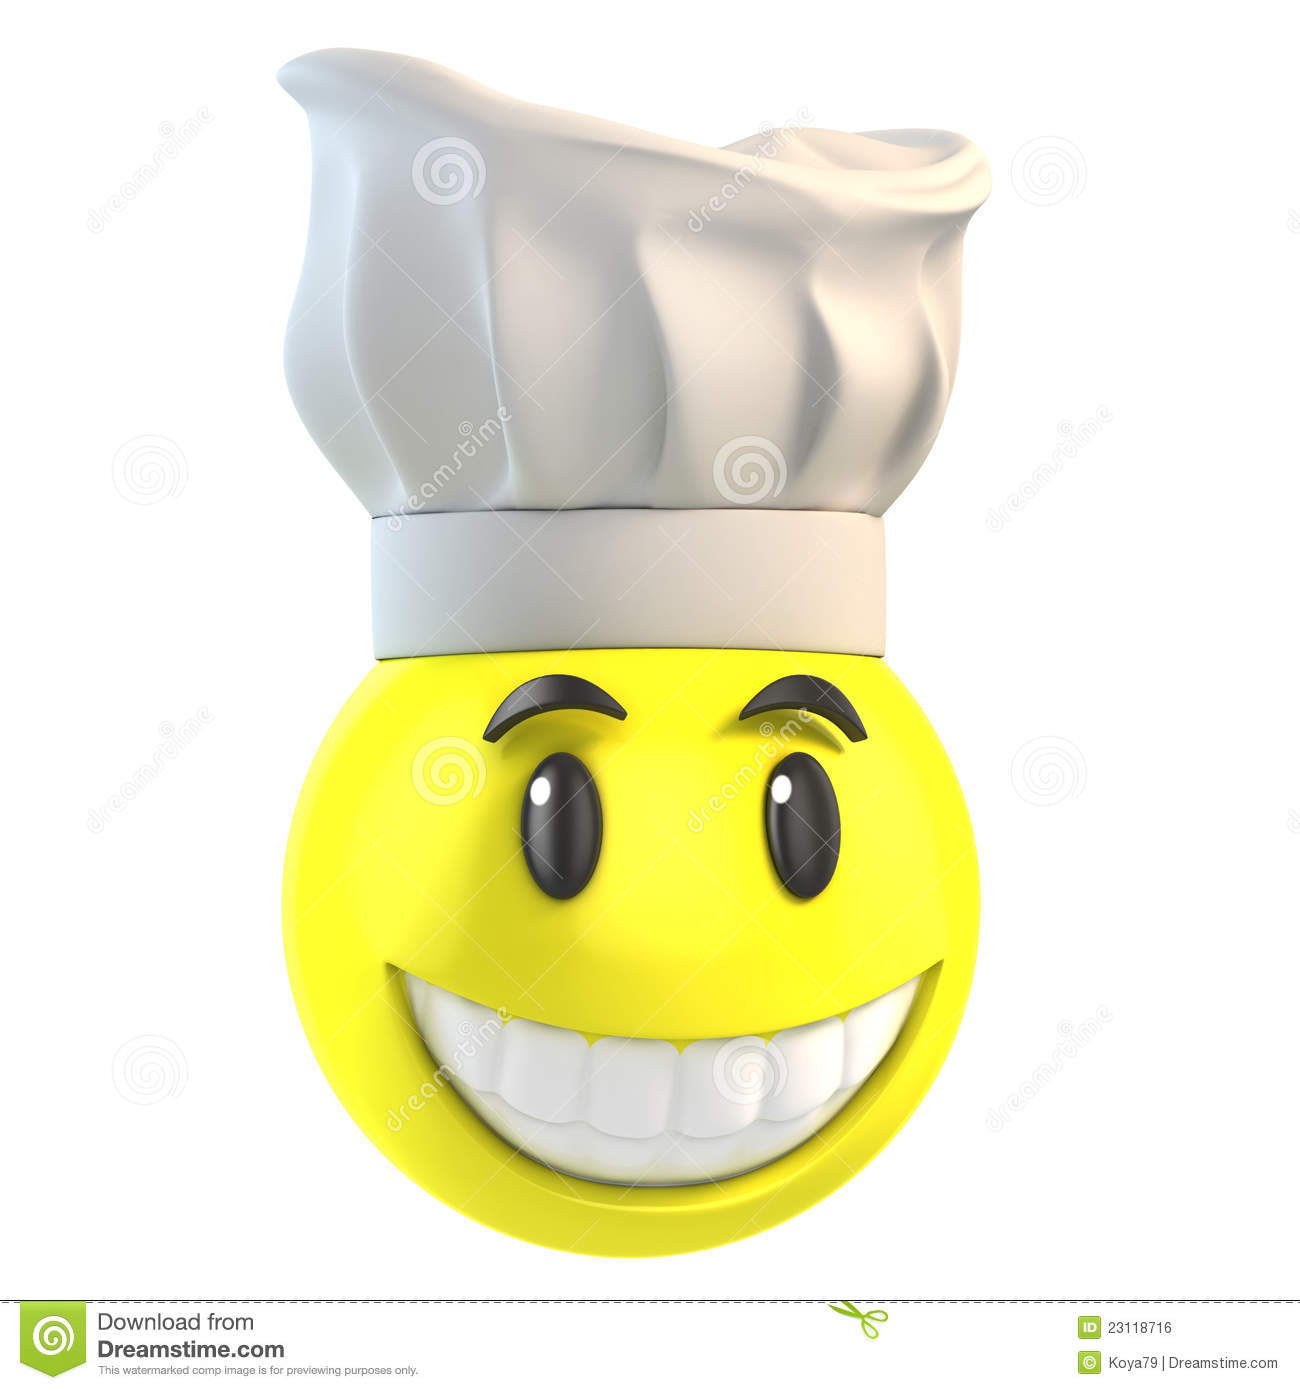 Smiley Cook Stock Photos, Images, & Pictures - 509 Images